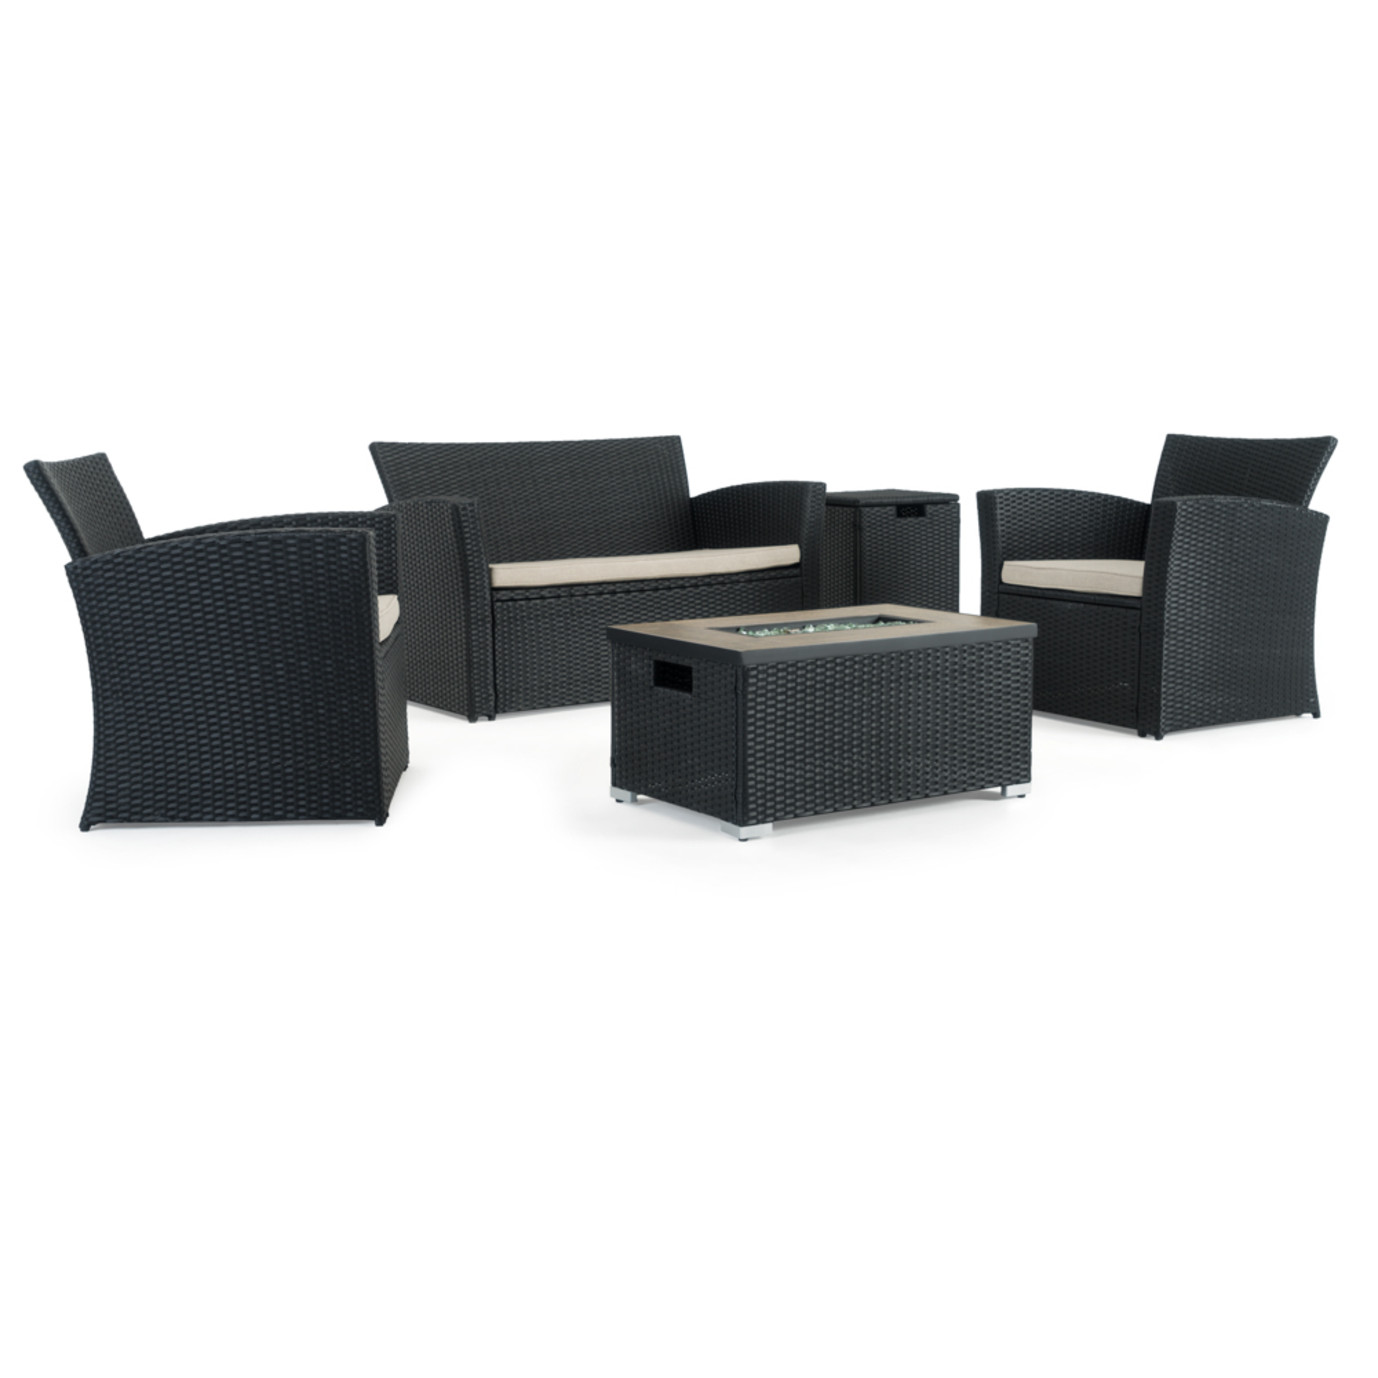 Sego Lily™ Magna 4 Piece Fire Seating Set - Black